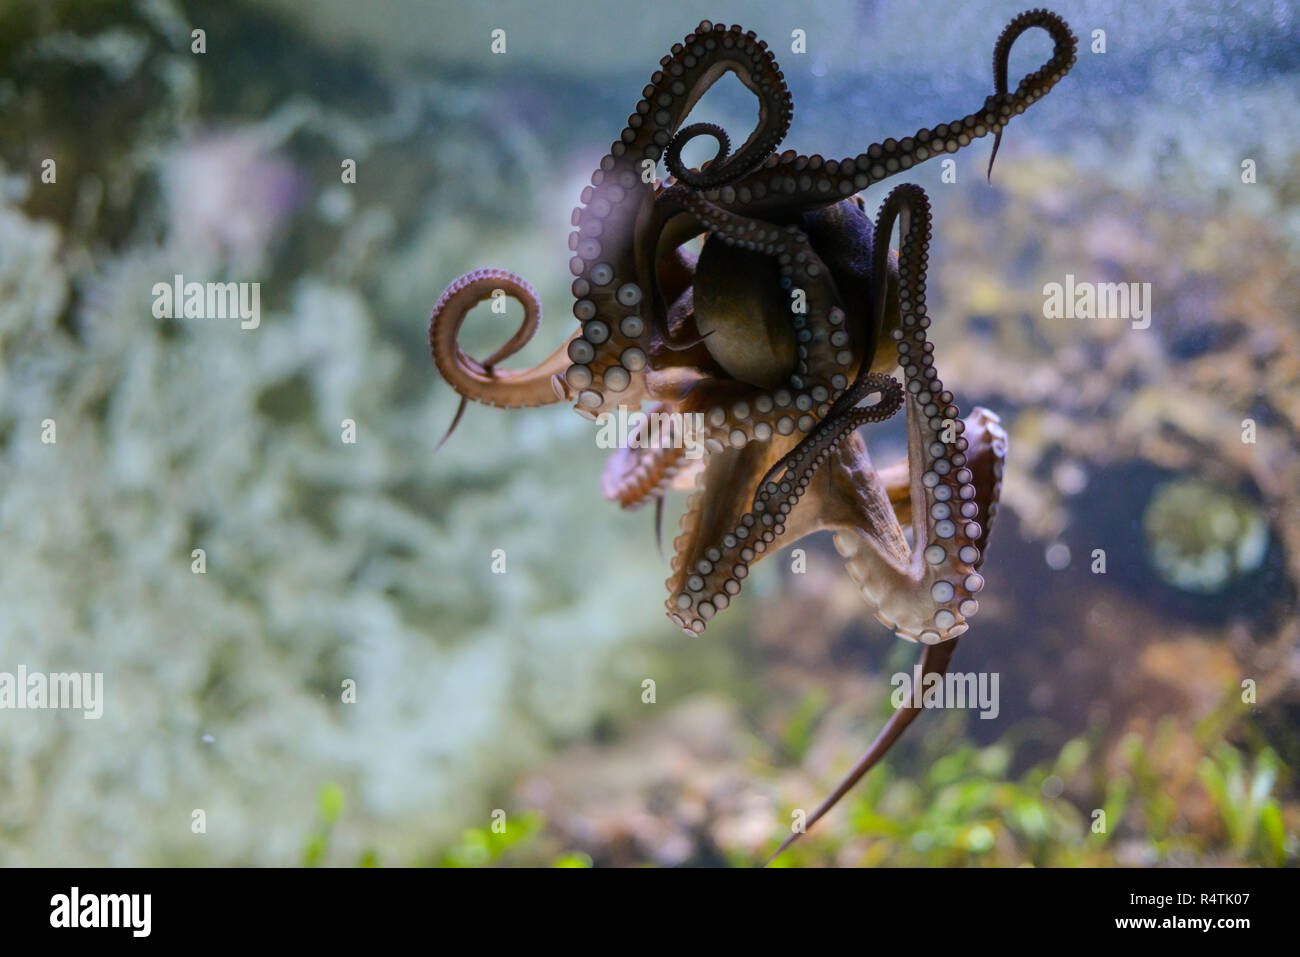 octopus in action - Stock Image